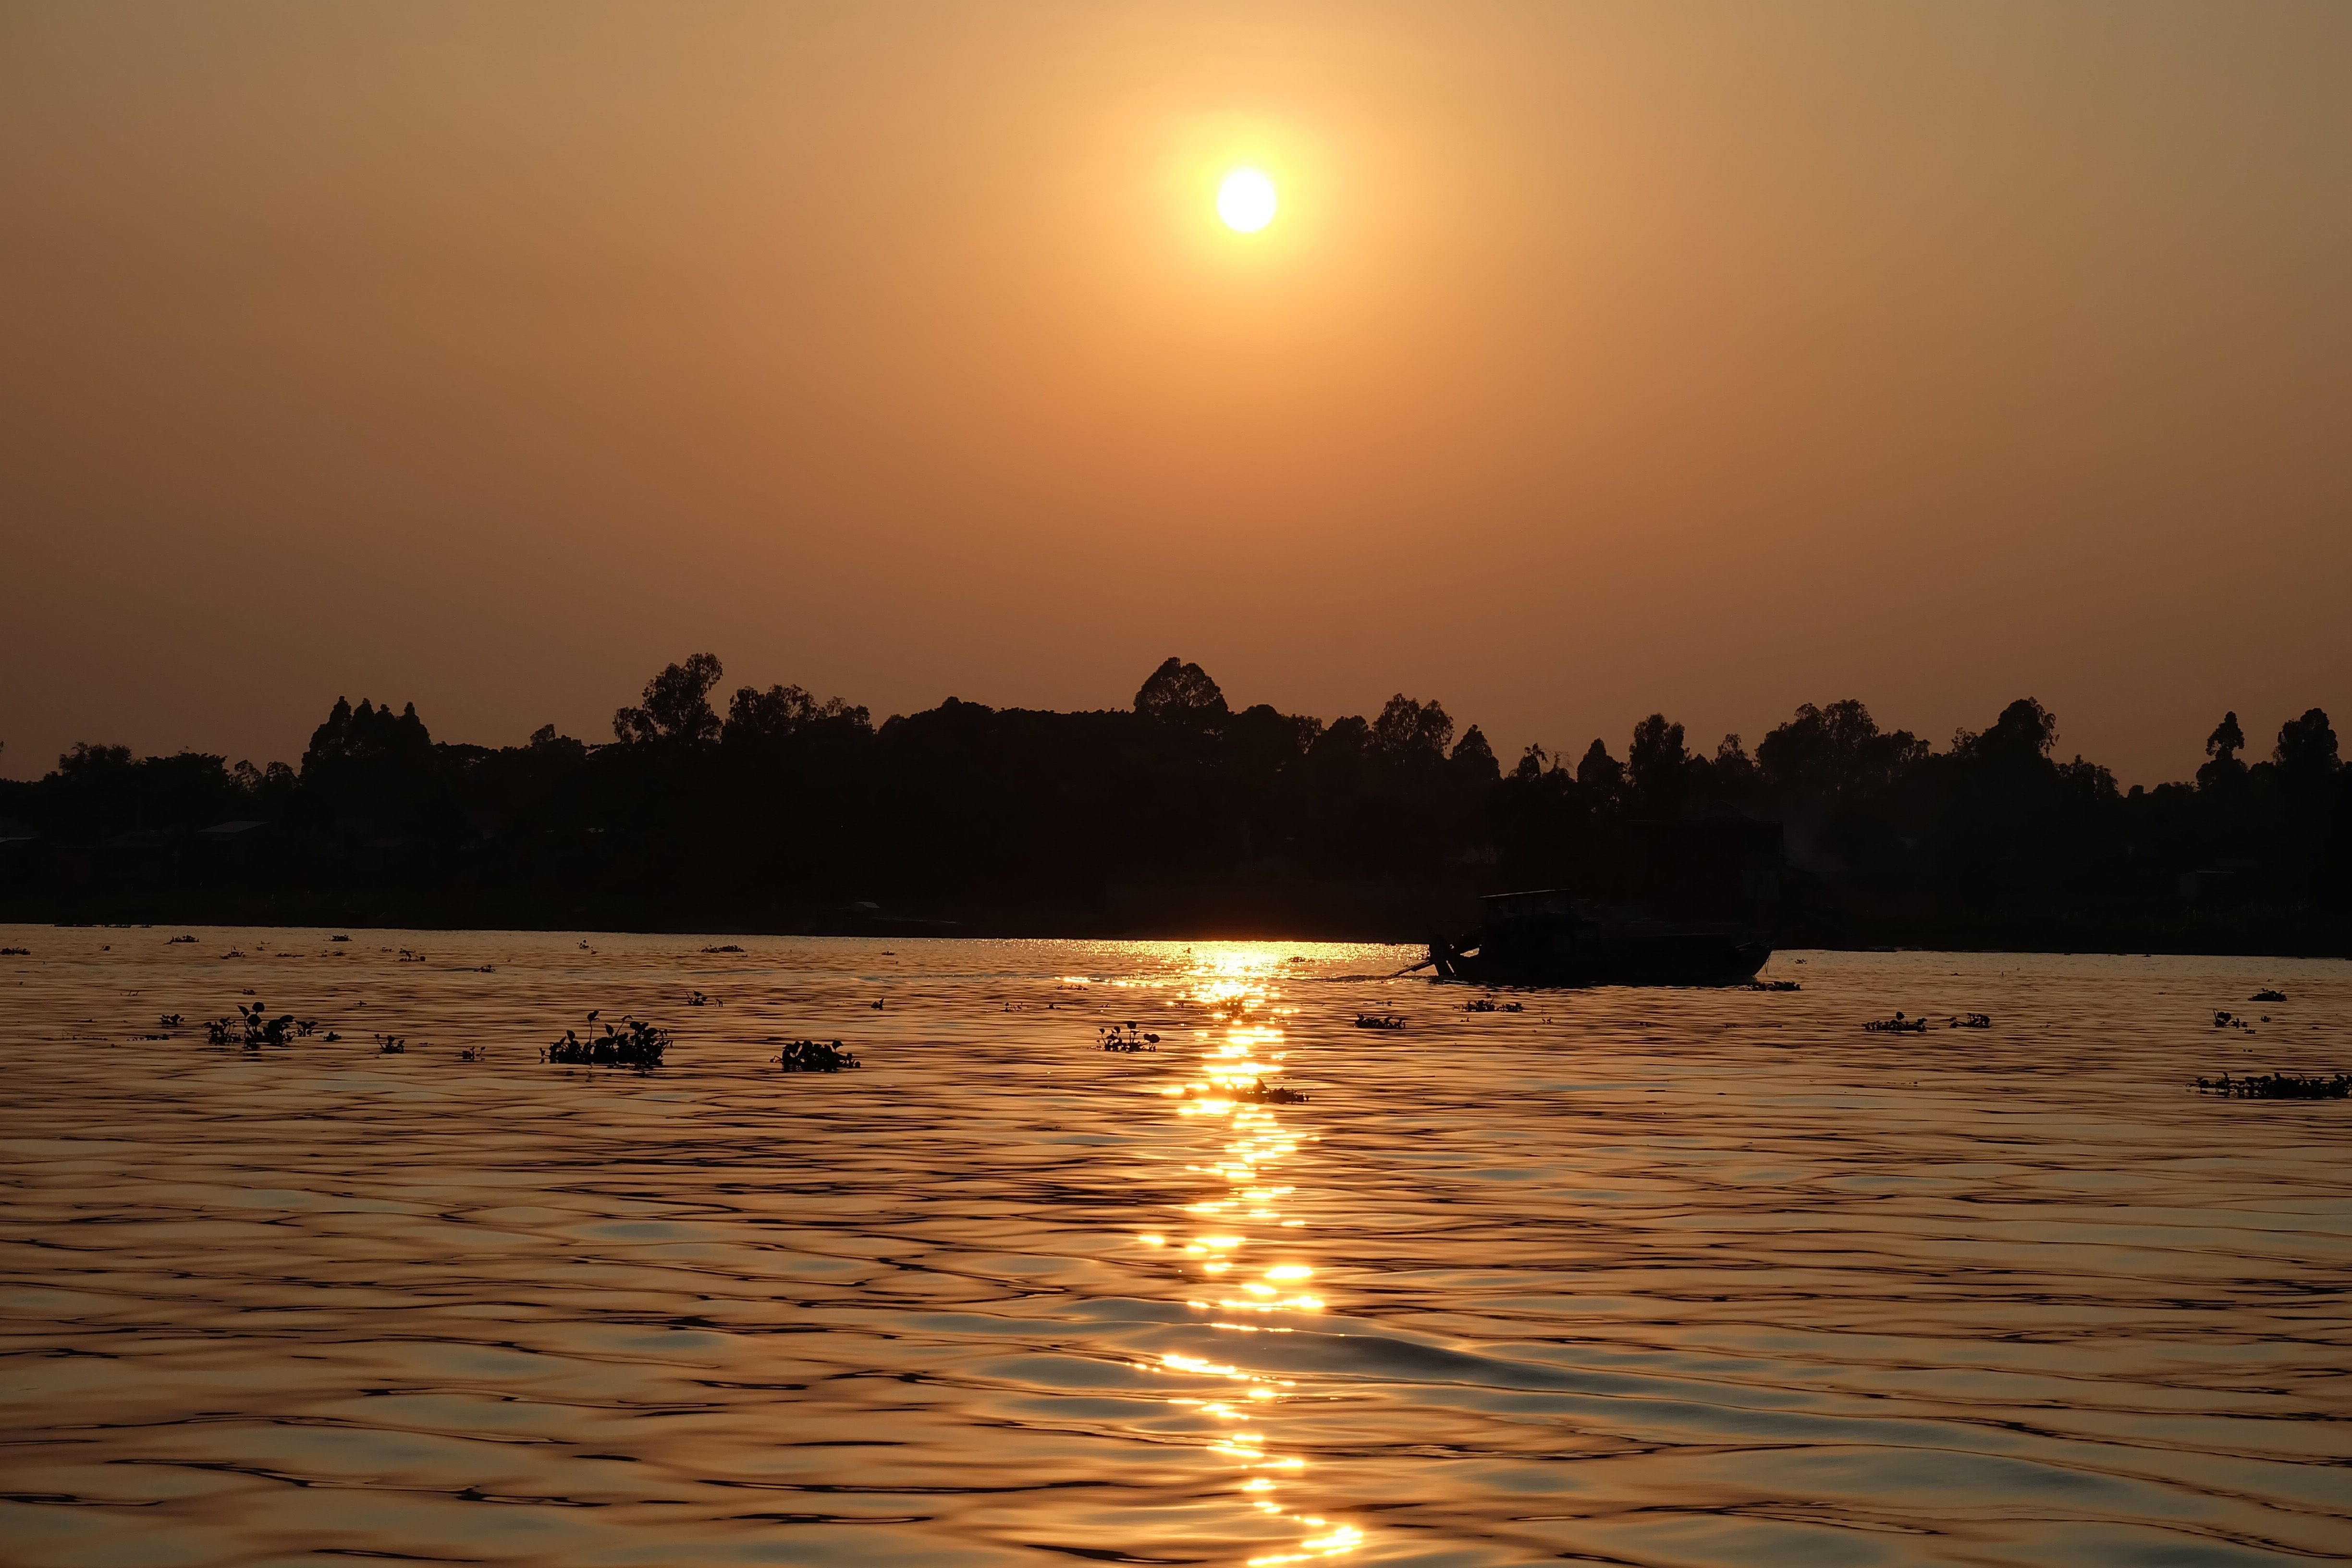 Beautiful sunset in Mekong Delta Vietnam. A mystic and incredible place. Read the whole travel diary on my blog.